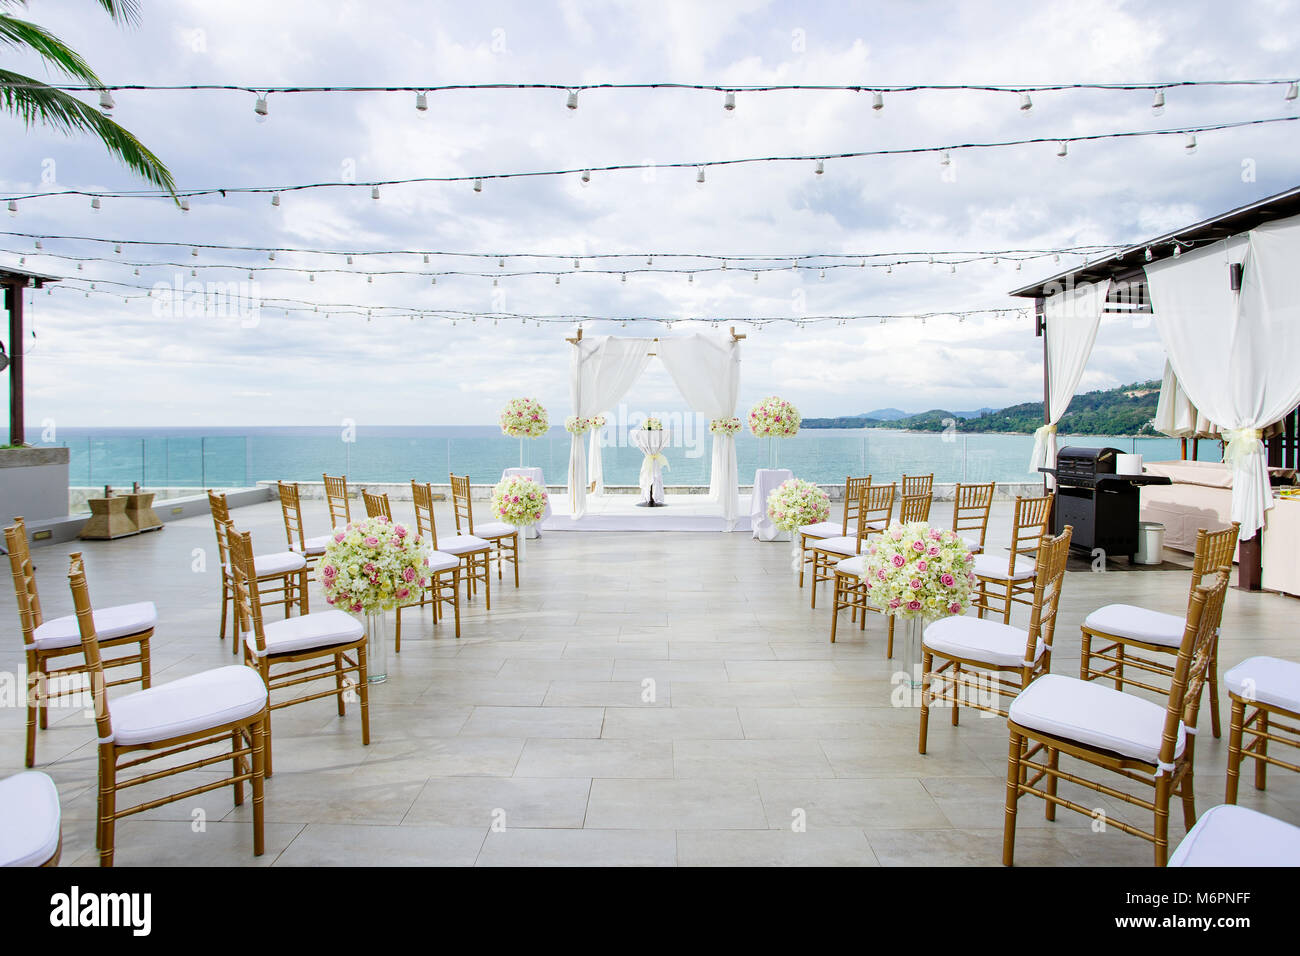 The wedding venue on the cliff, white gold theme chairs for the ...